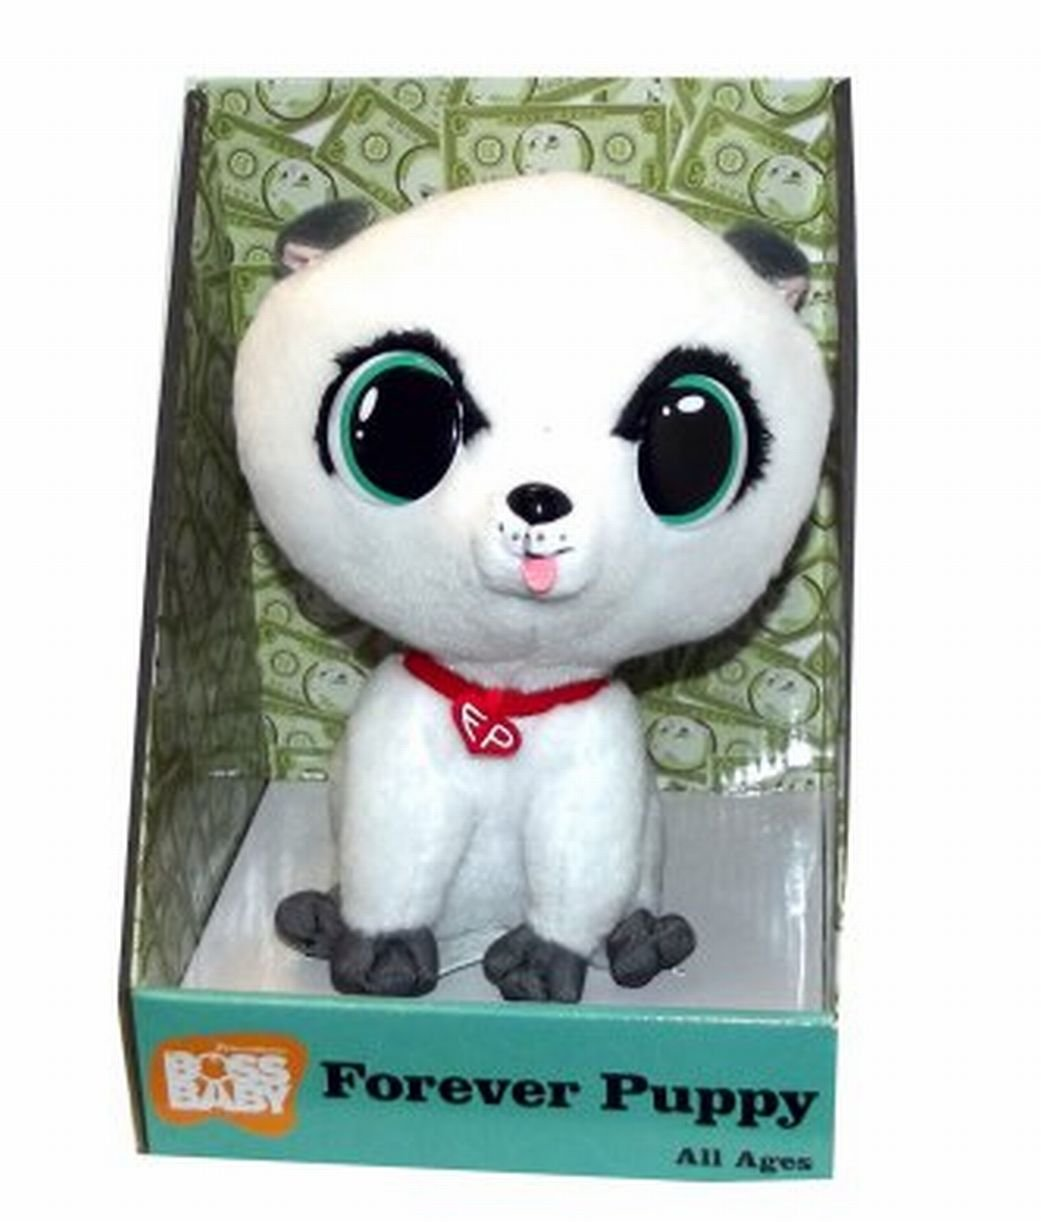 Amazon.com: Dreamworks Boss Baby Forever Puppy Plush Toy, 8 X 6 X 6 inches: Toys & Games